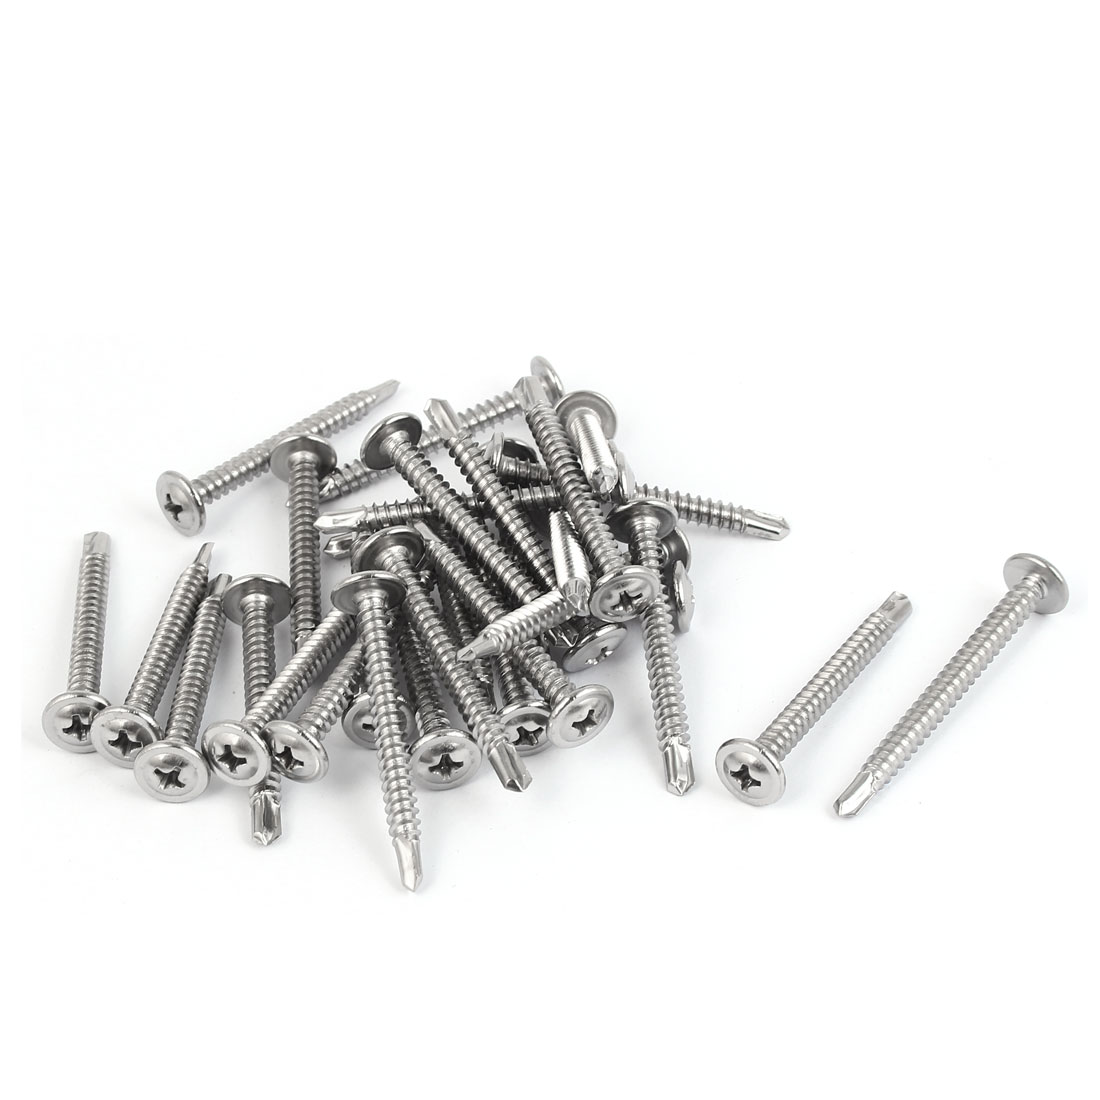 M4.8x45mm #10 Male Thread Stainless Steel Self Drilling Flat Head Screws 30 Pcs